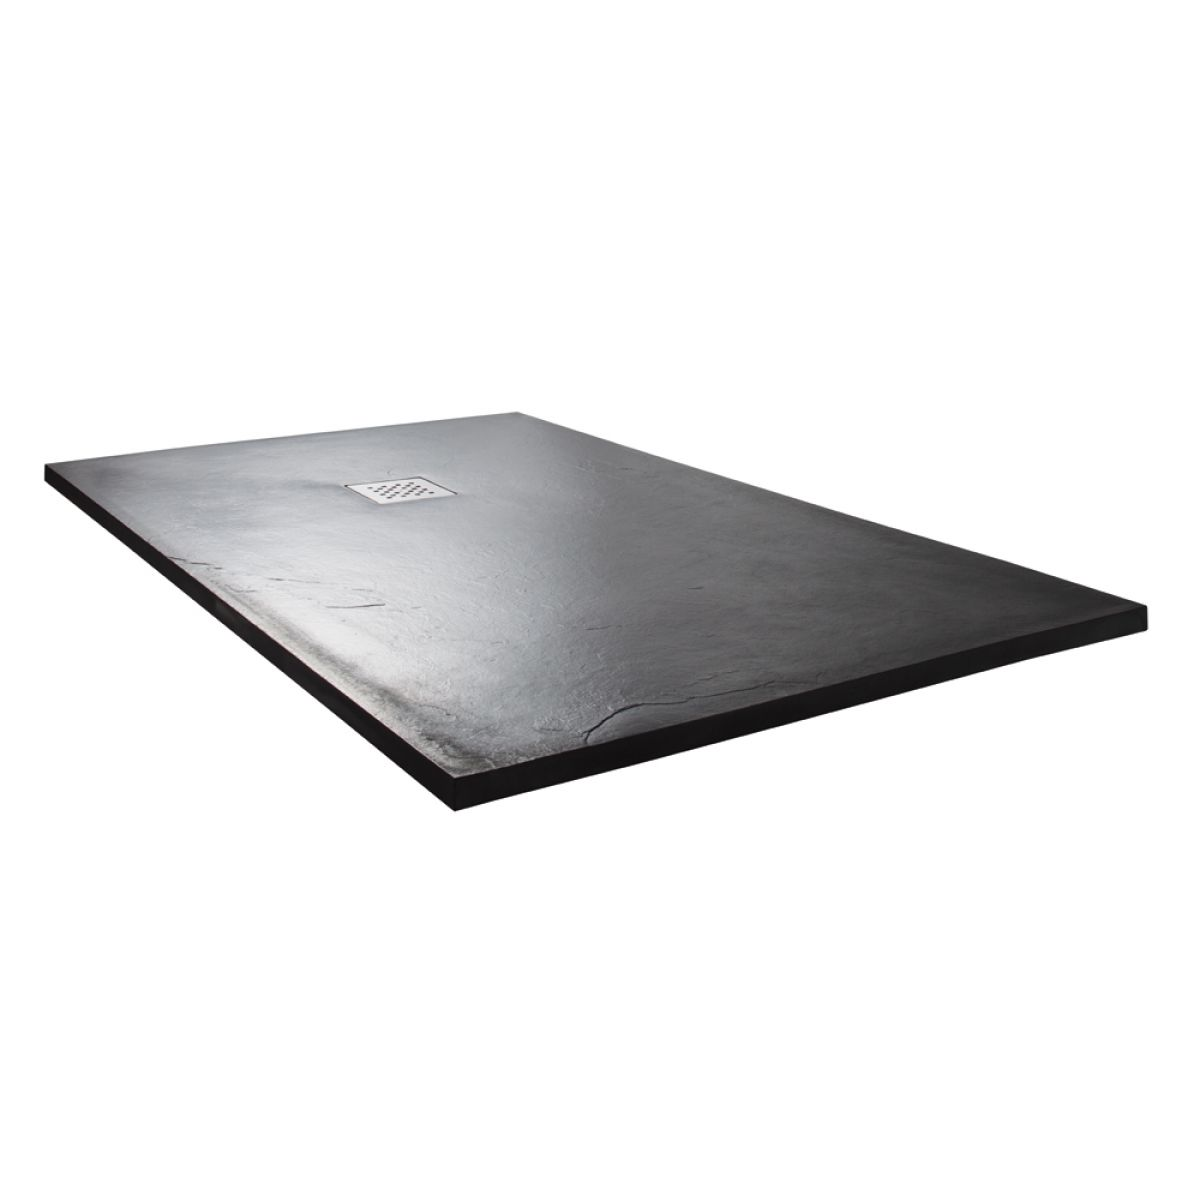 Cassellie Cass Stone Anthracite Slate Effect Rectangular Shower Tray 1700 x 800mm